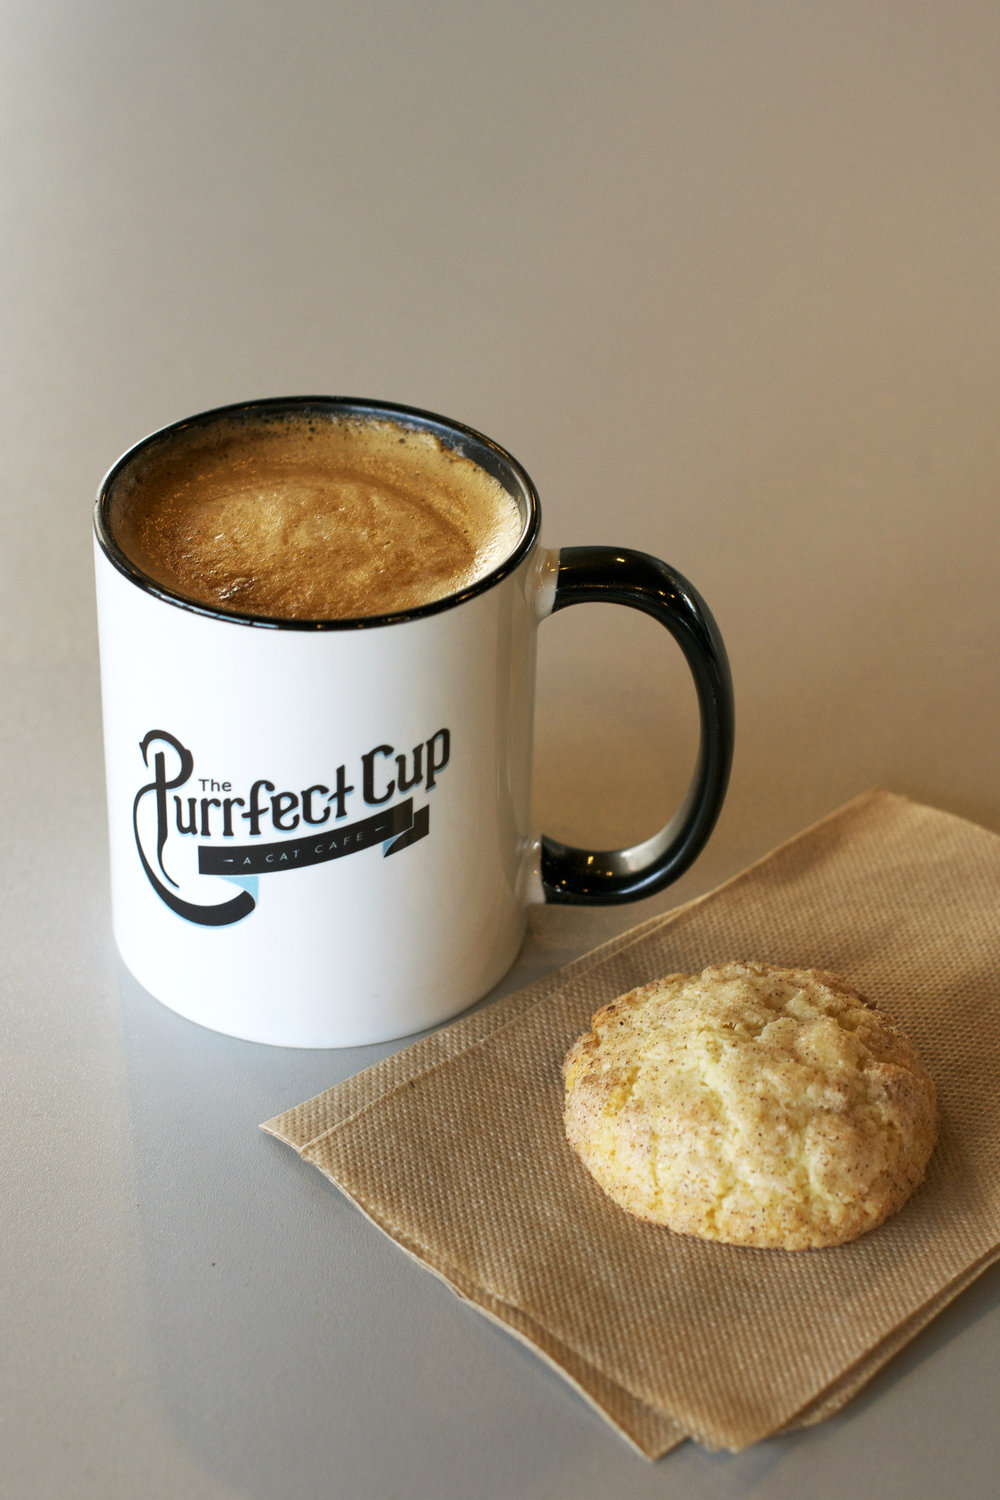 The-Purrfect-Cup-latte-snickerdoodle.jpg